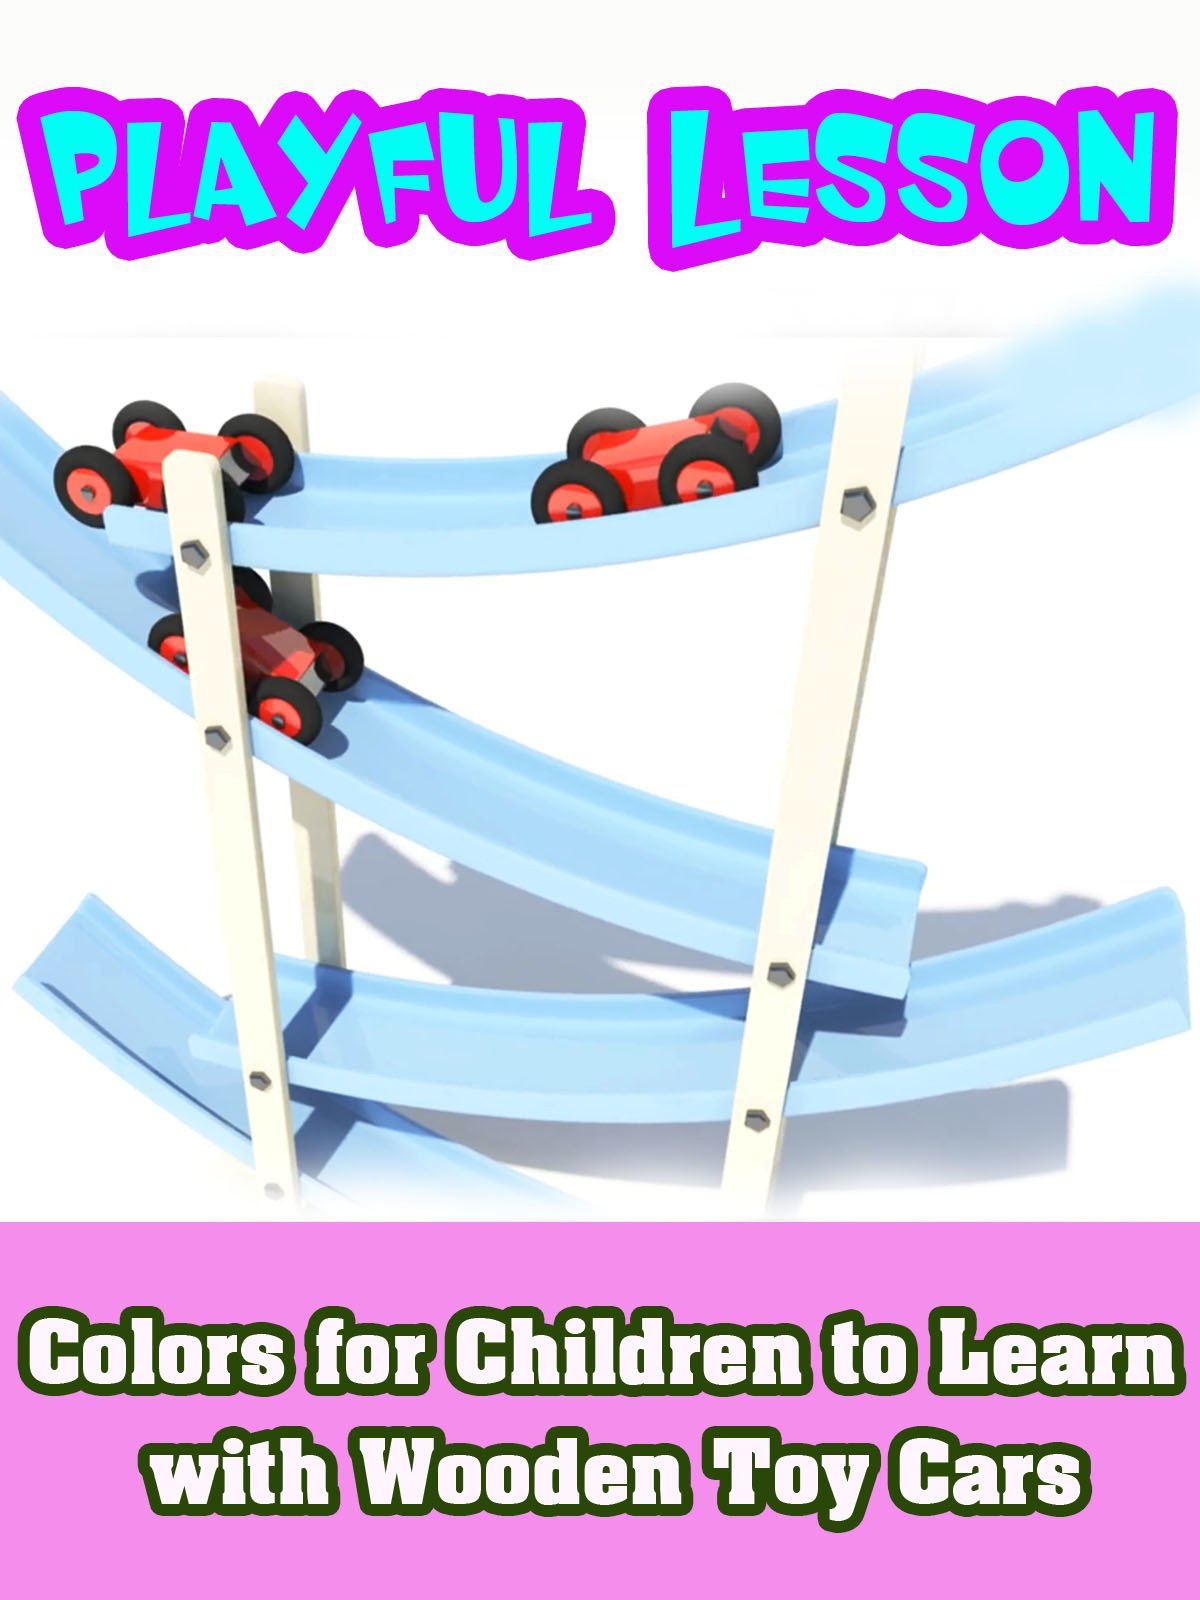 Colors for Children to Learn with Wooden Toy Cars on Amazon Prime Video UK